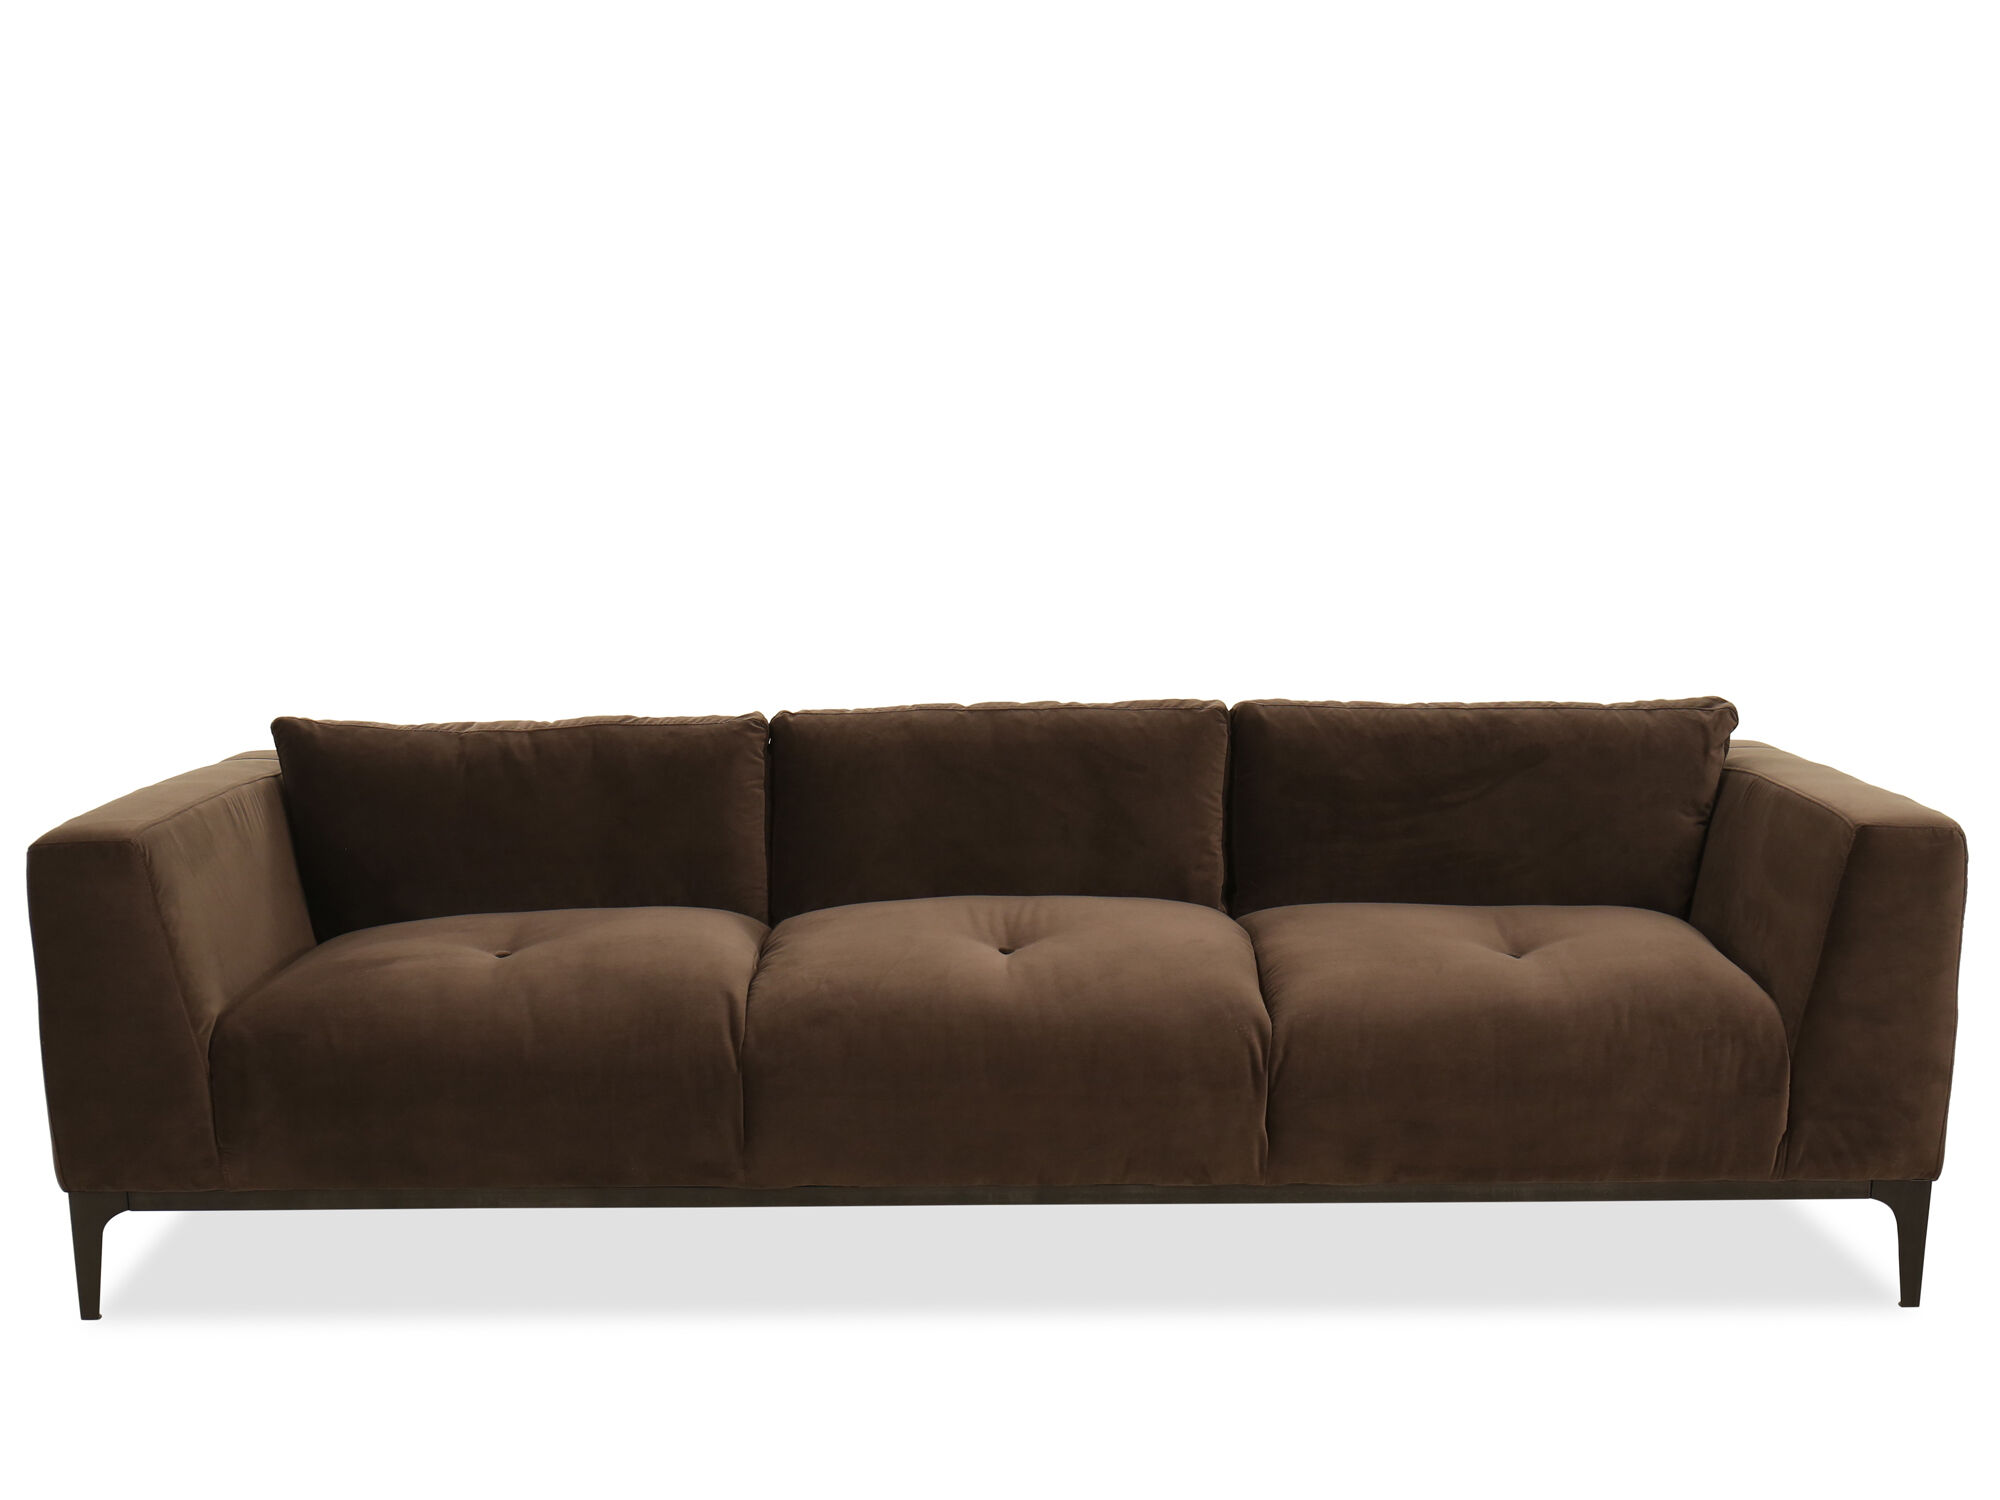 button tufted sofas room and board metro sofa with chaise in brown mathis brothers furniture